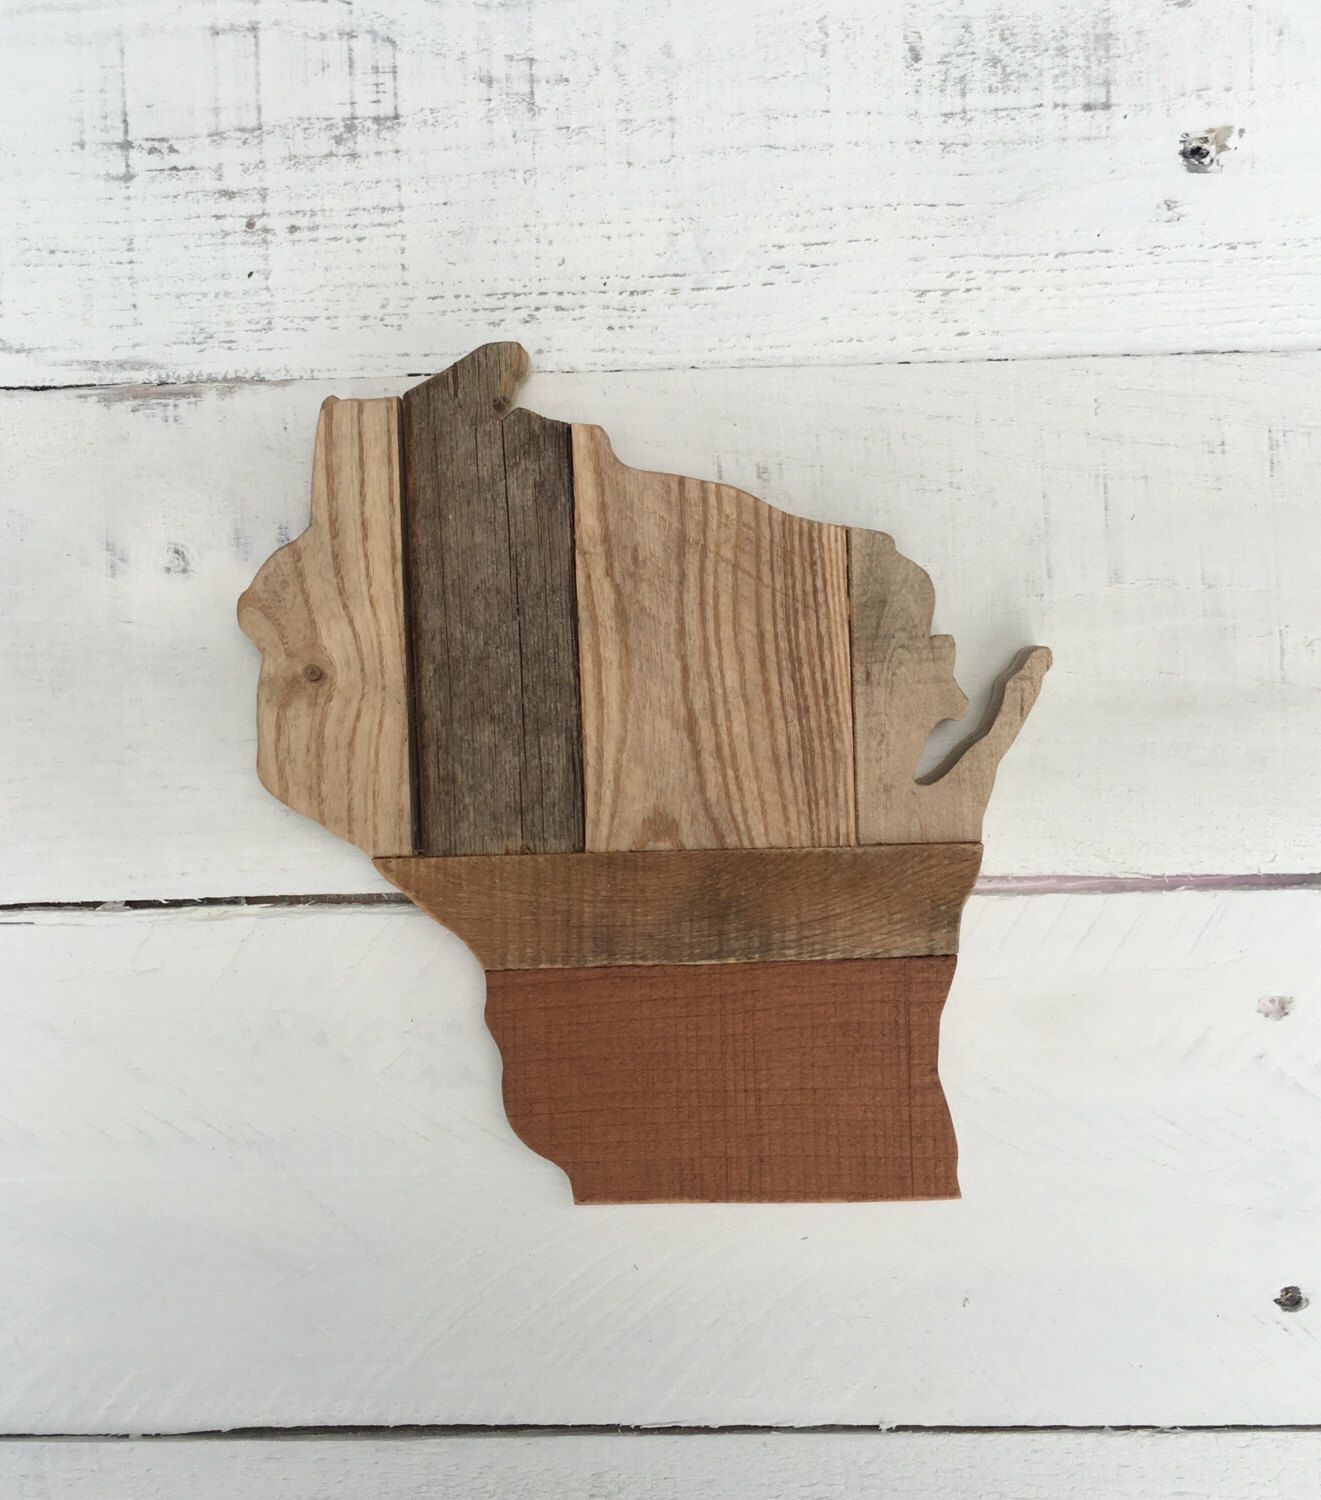 Reclaimed Wood Wisconsin WB Designs - Reclaimed Wood Indianapolis WB Designs